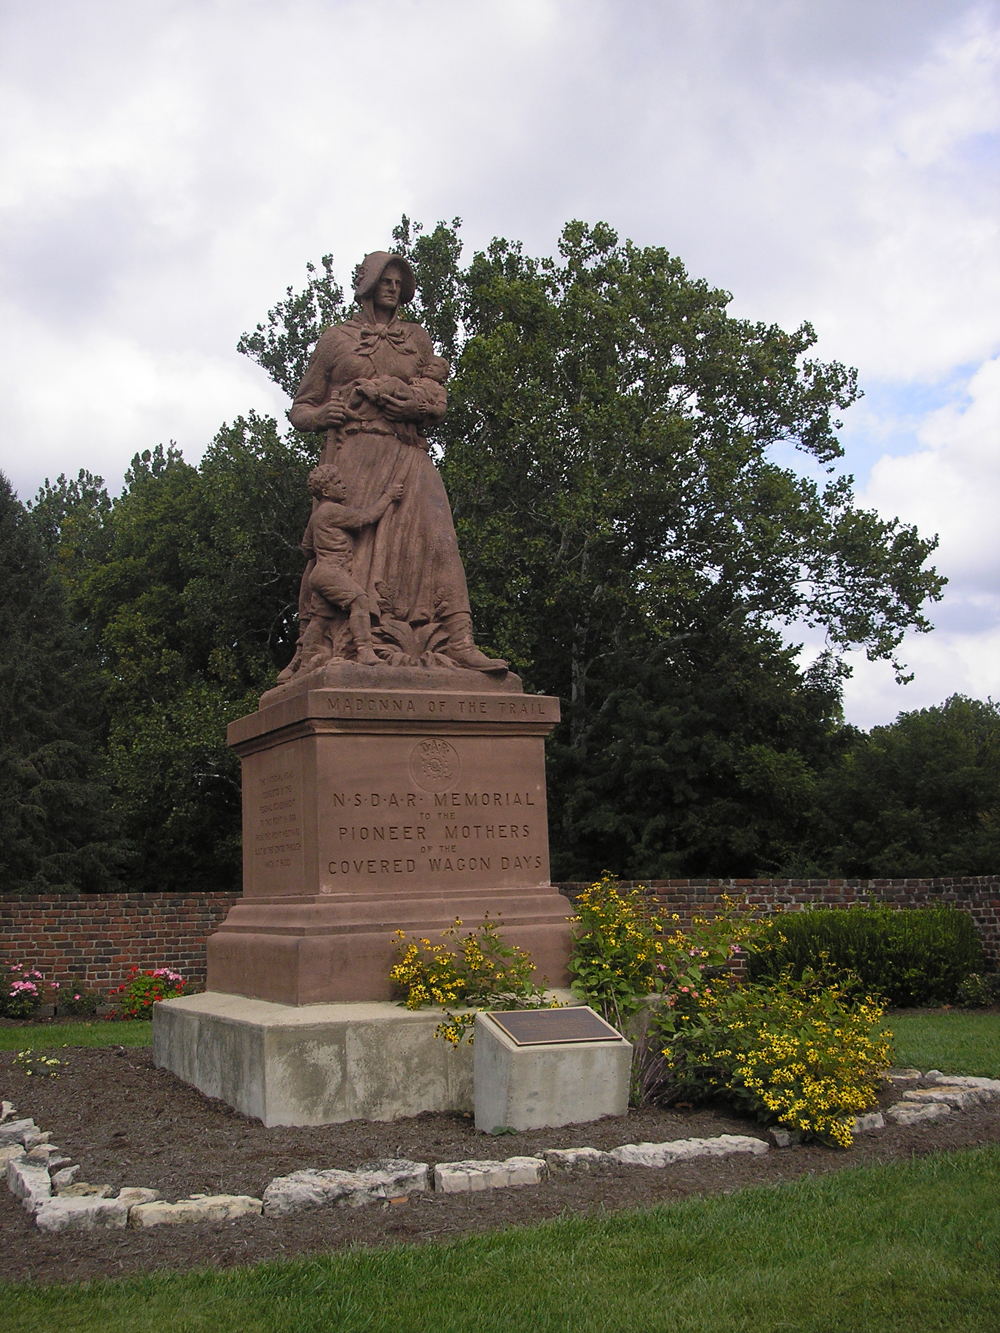 Madonna of the Trail statue in 2nd location (1956-2011): Snyder Park, Springfield, Ohio, 2009